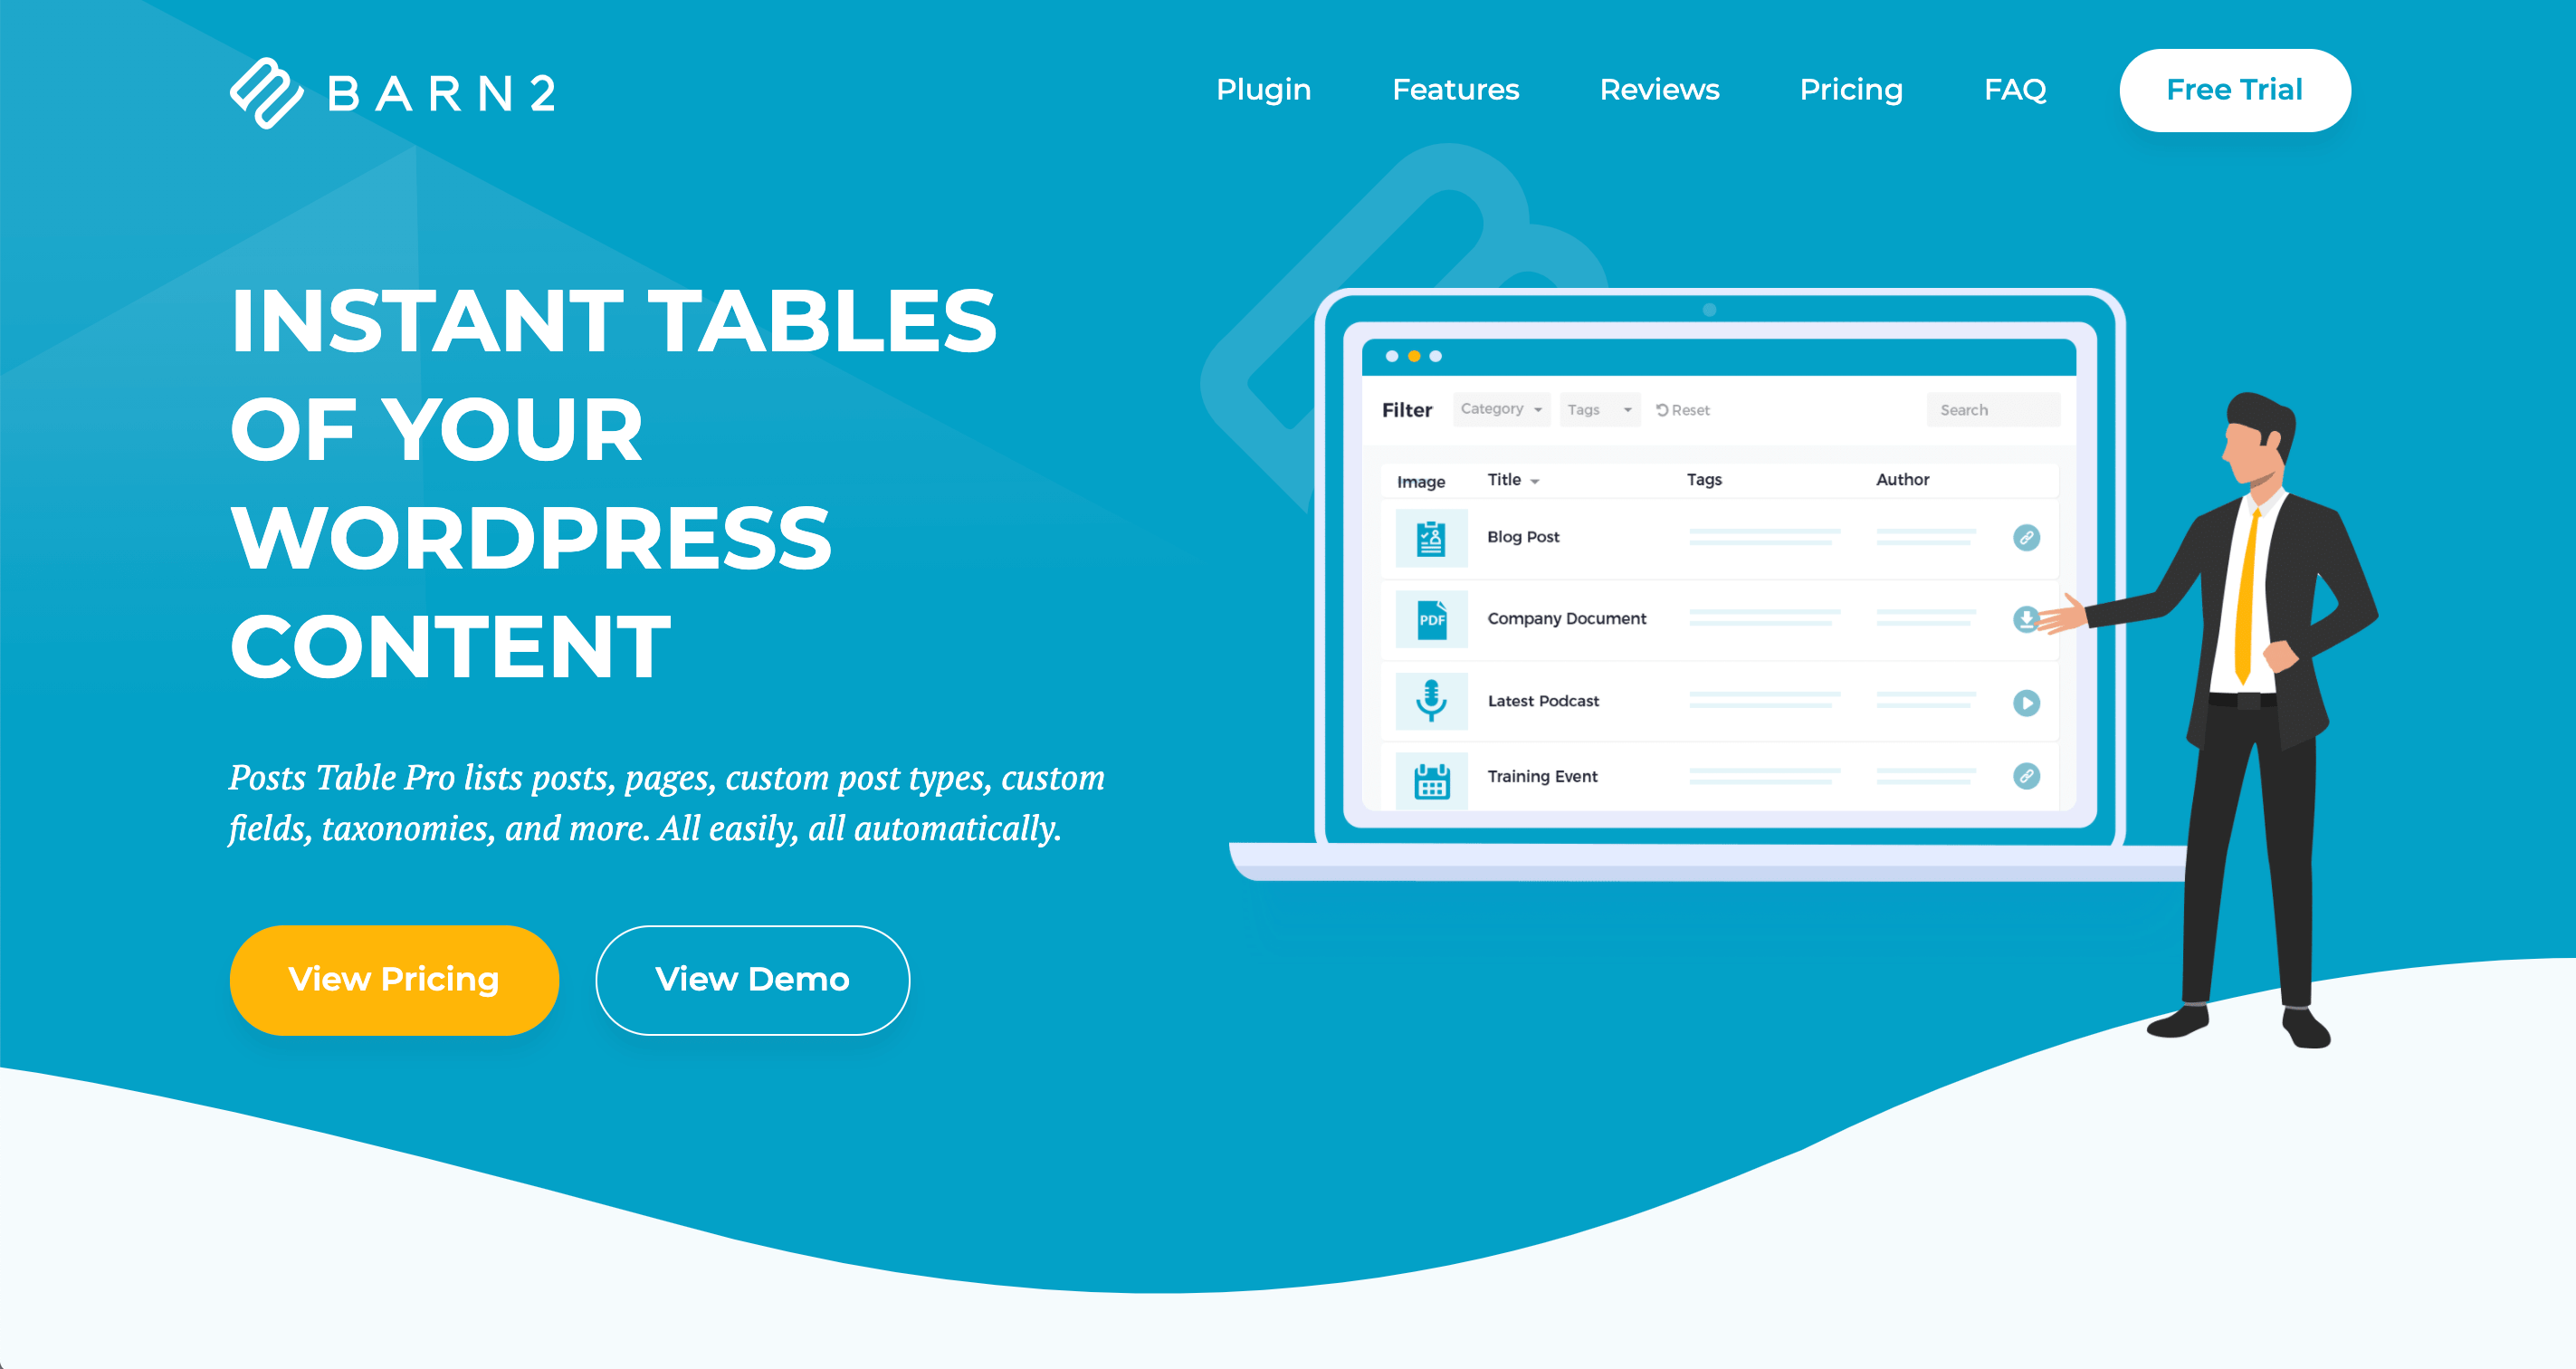 Posts Table Pro by Barn2